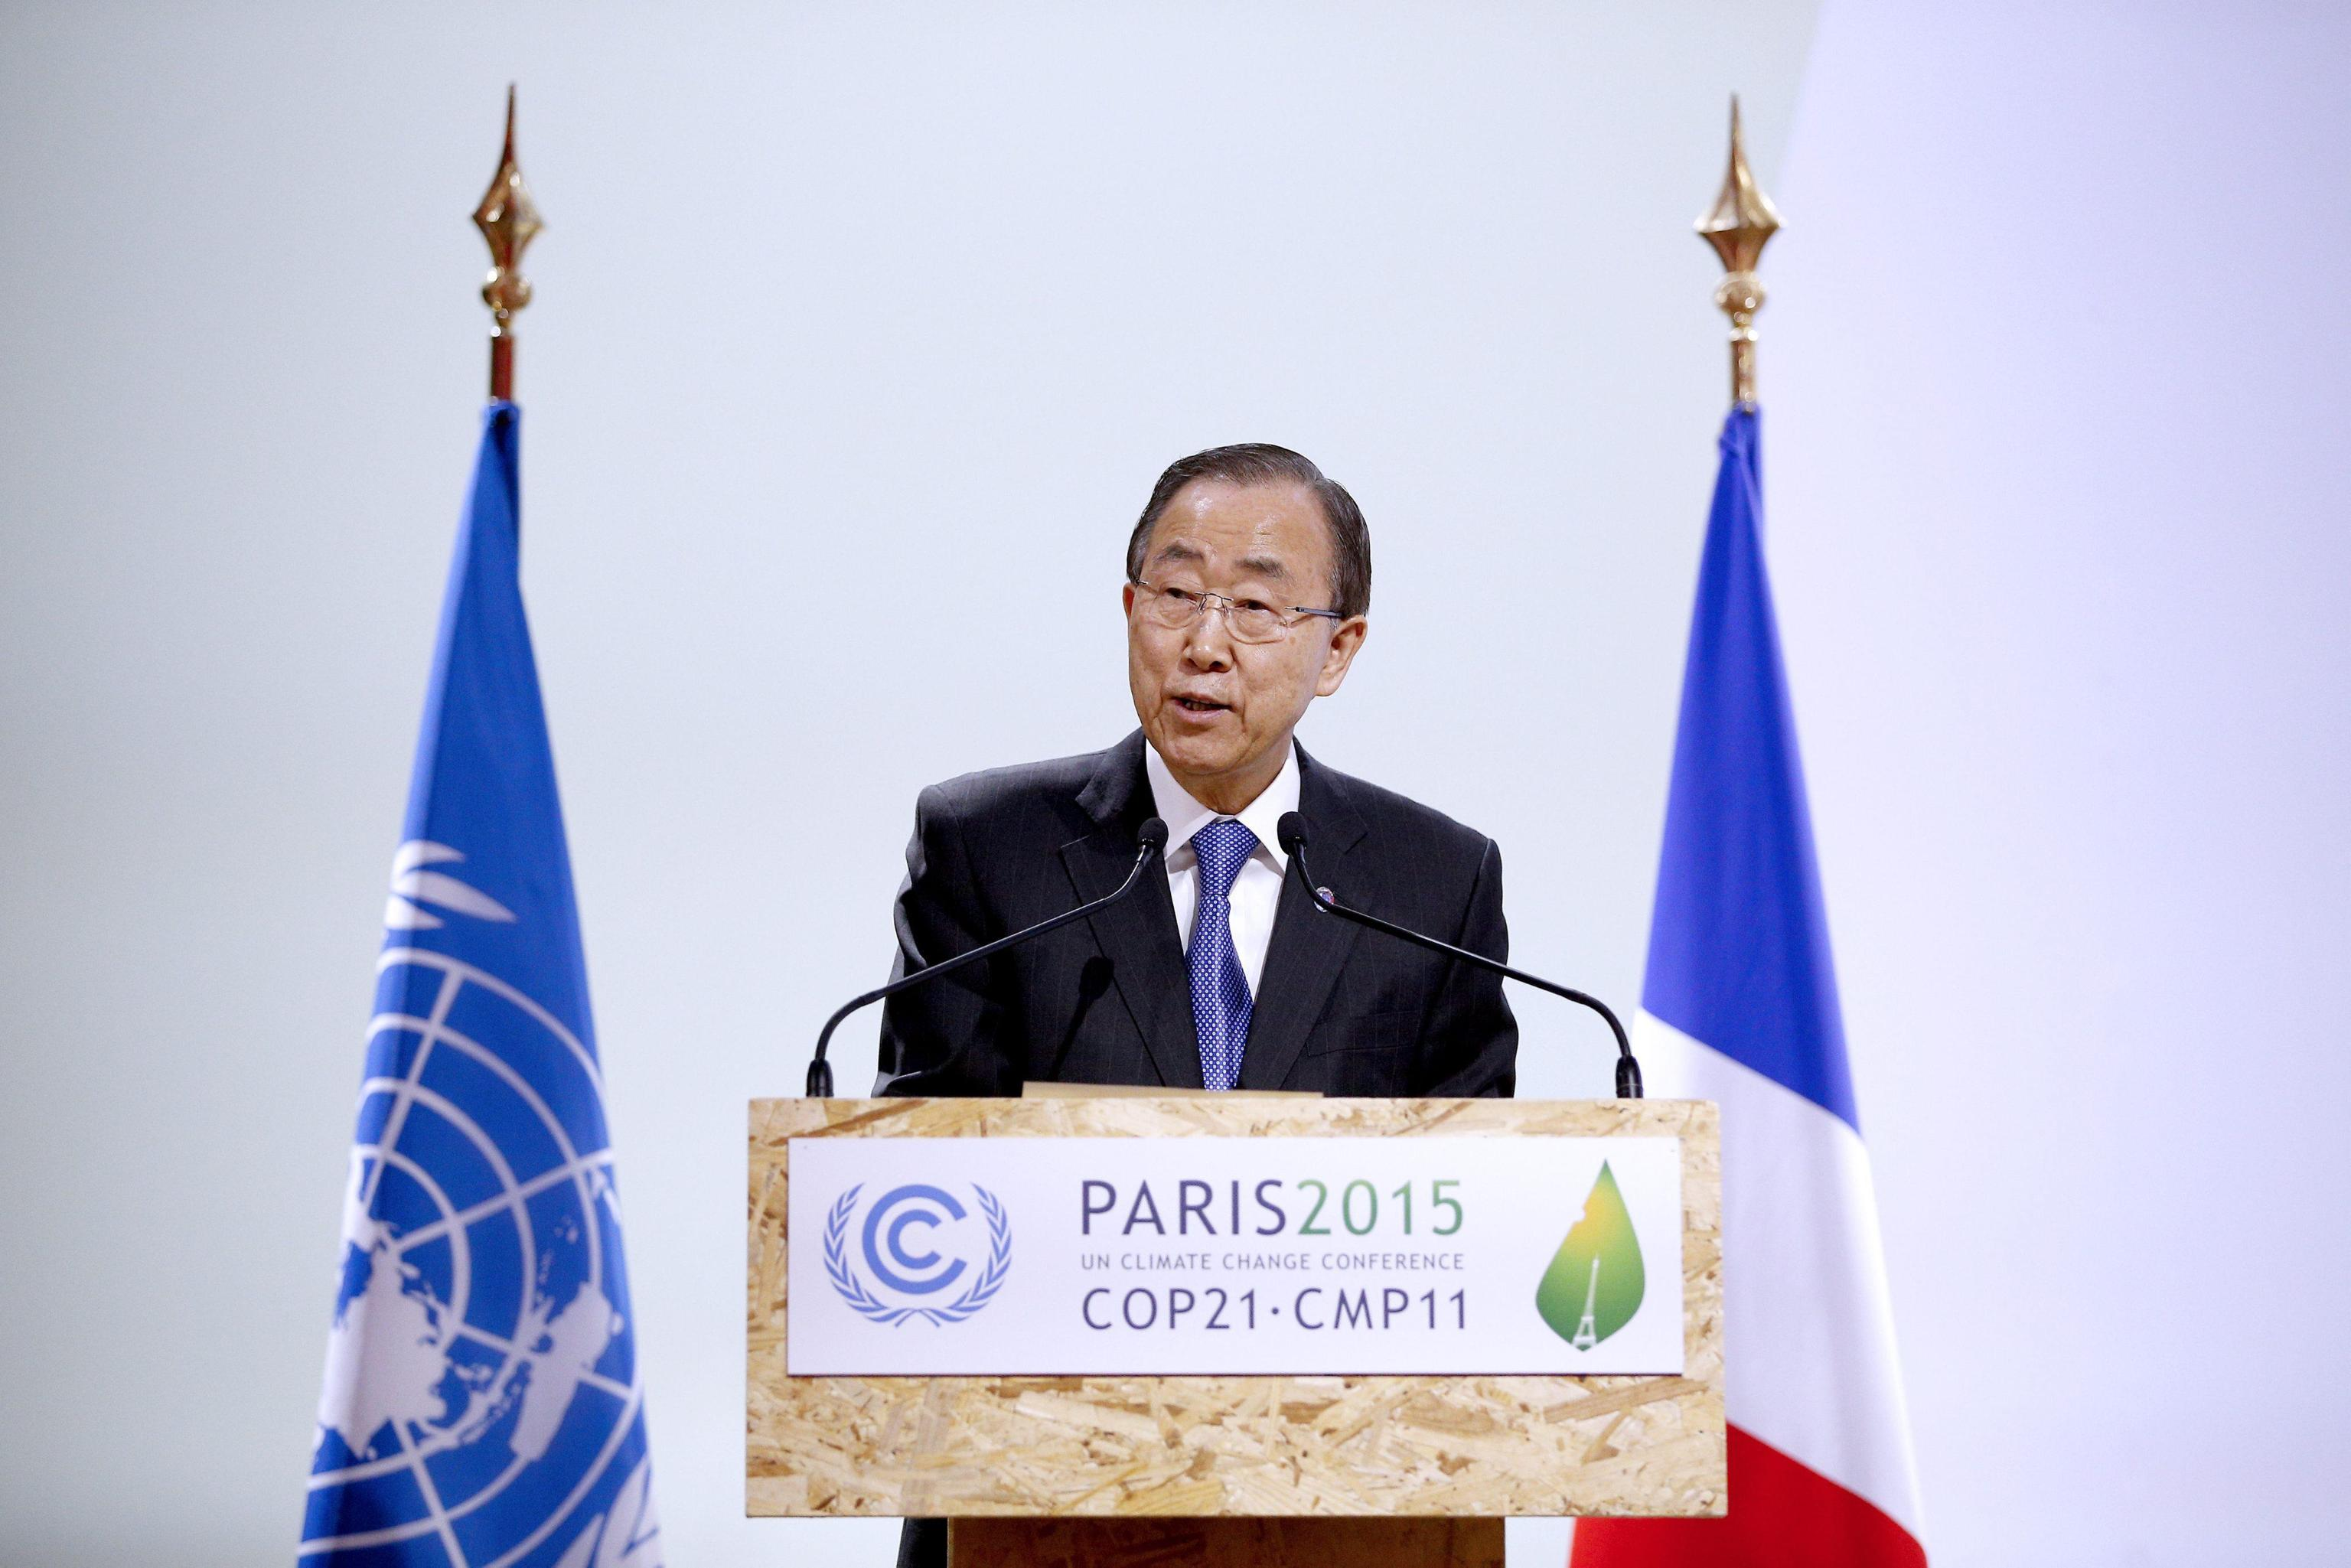 UN Secretary-General Ban Ki-moon delivers a speech during the 'High-Level Segment of COP 21/CMP 11' meeting at the COP21 World Climate Change Conference 2015 in Le Bourget